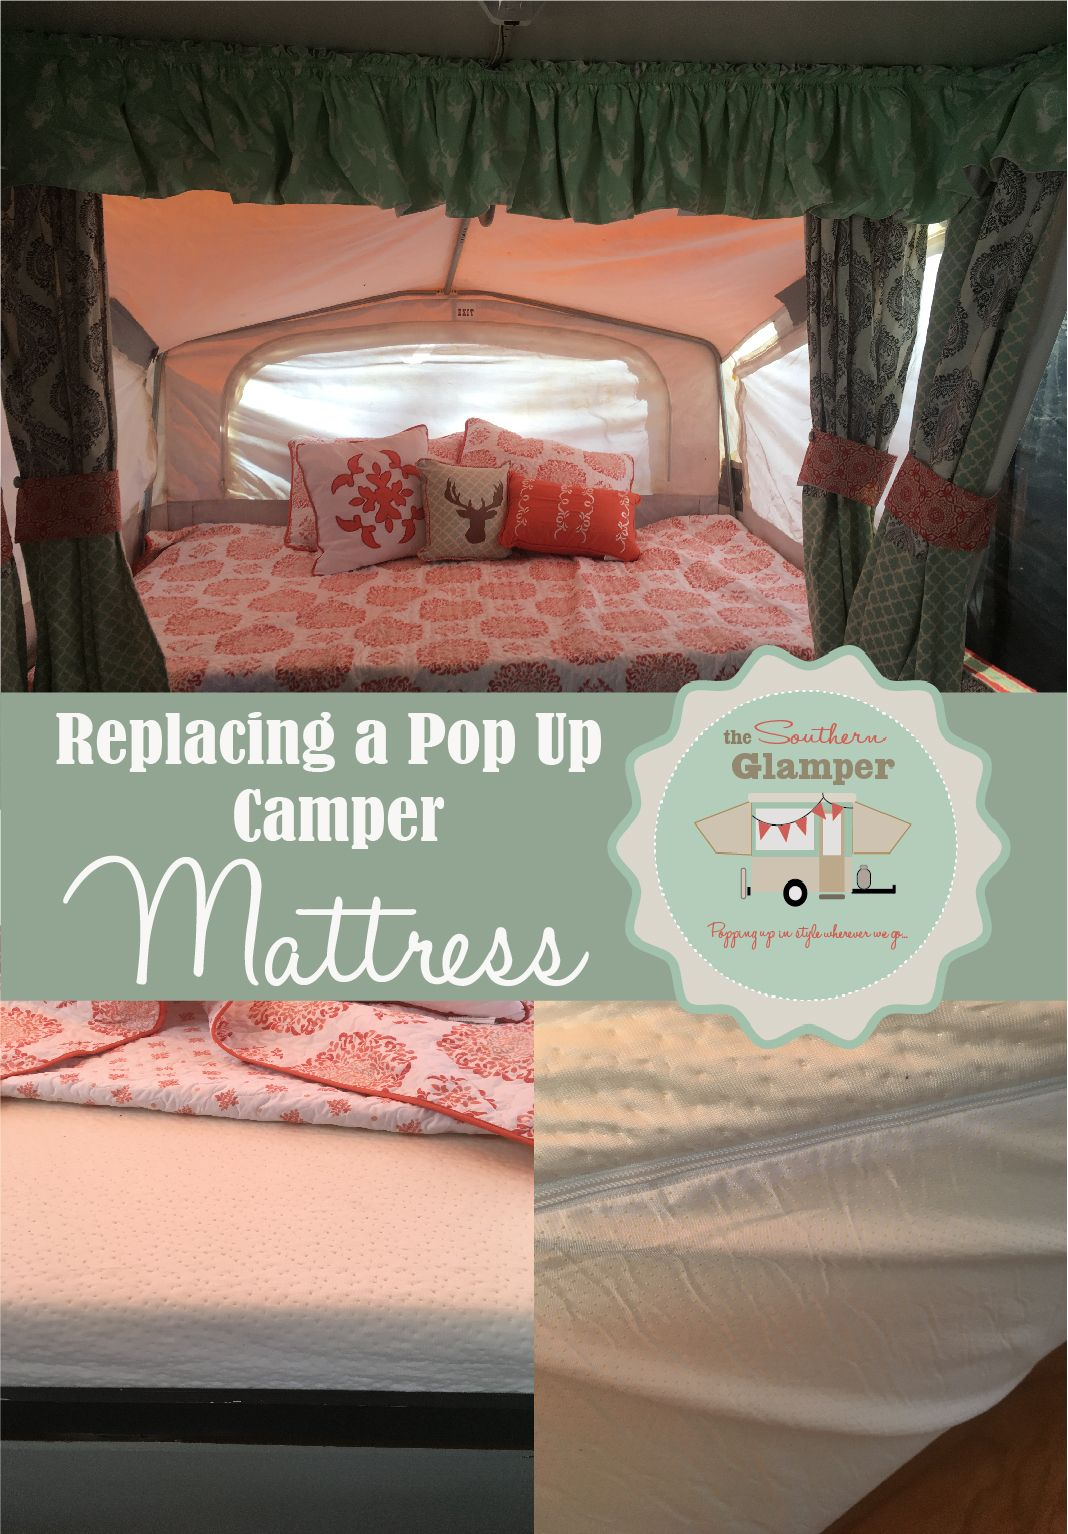 Pop Up Camper Mattress Replacement on a Budget in 2020 ...